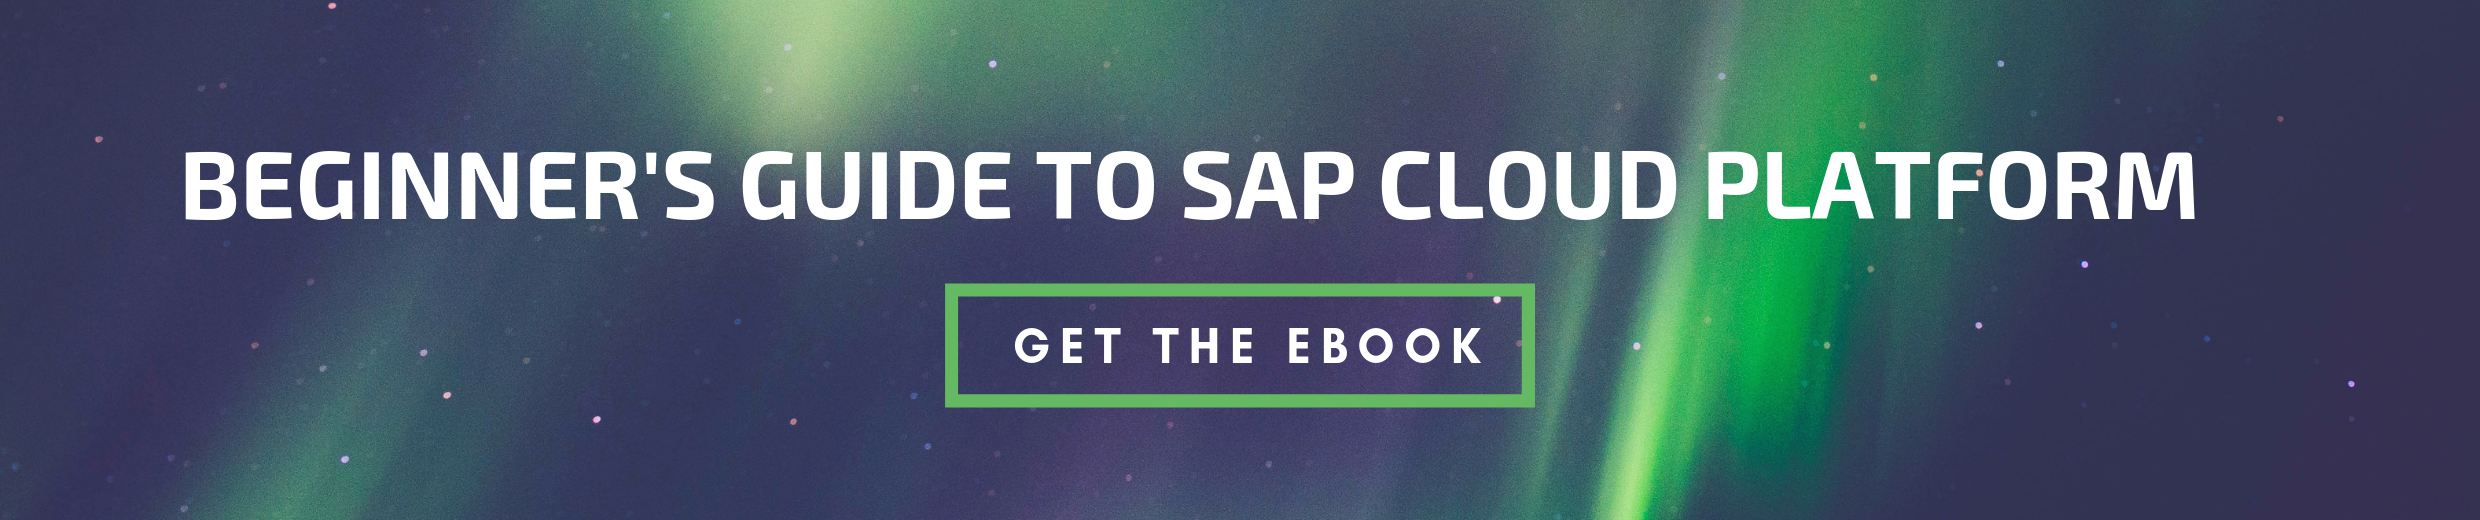 Get the Beginner's Guide to SAP Cloud Platform